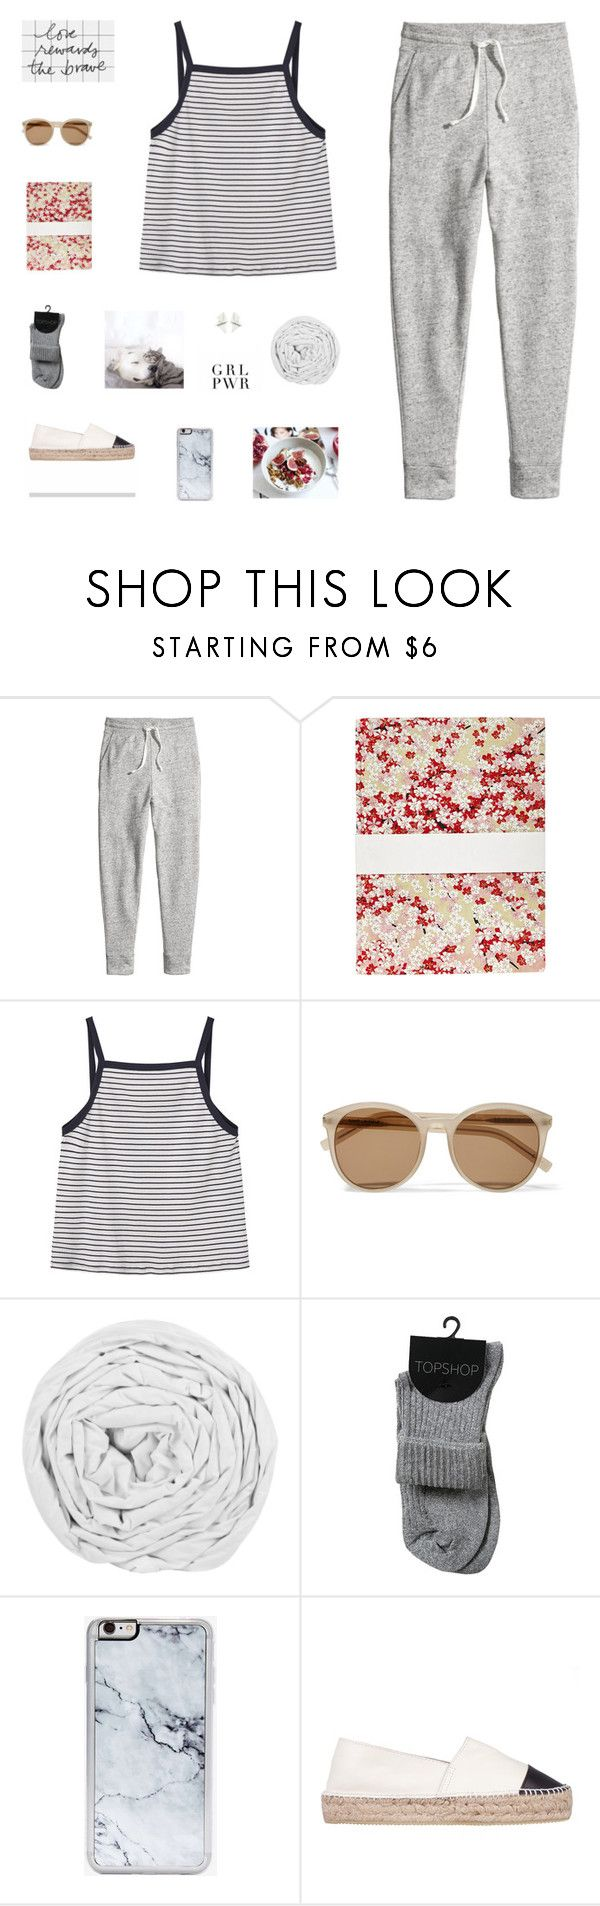 """""""lion's heart"""" by made-of-starlight ❤ liked on Polyvore featuring H&M, MANGO, Yves Saint Laurent, The Fine Bedding Company, Zero Gravity, Tony Bianco and snowinseptember5years"""